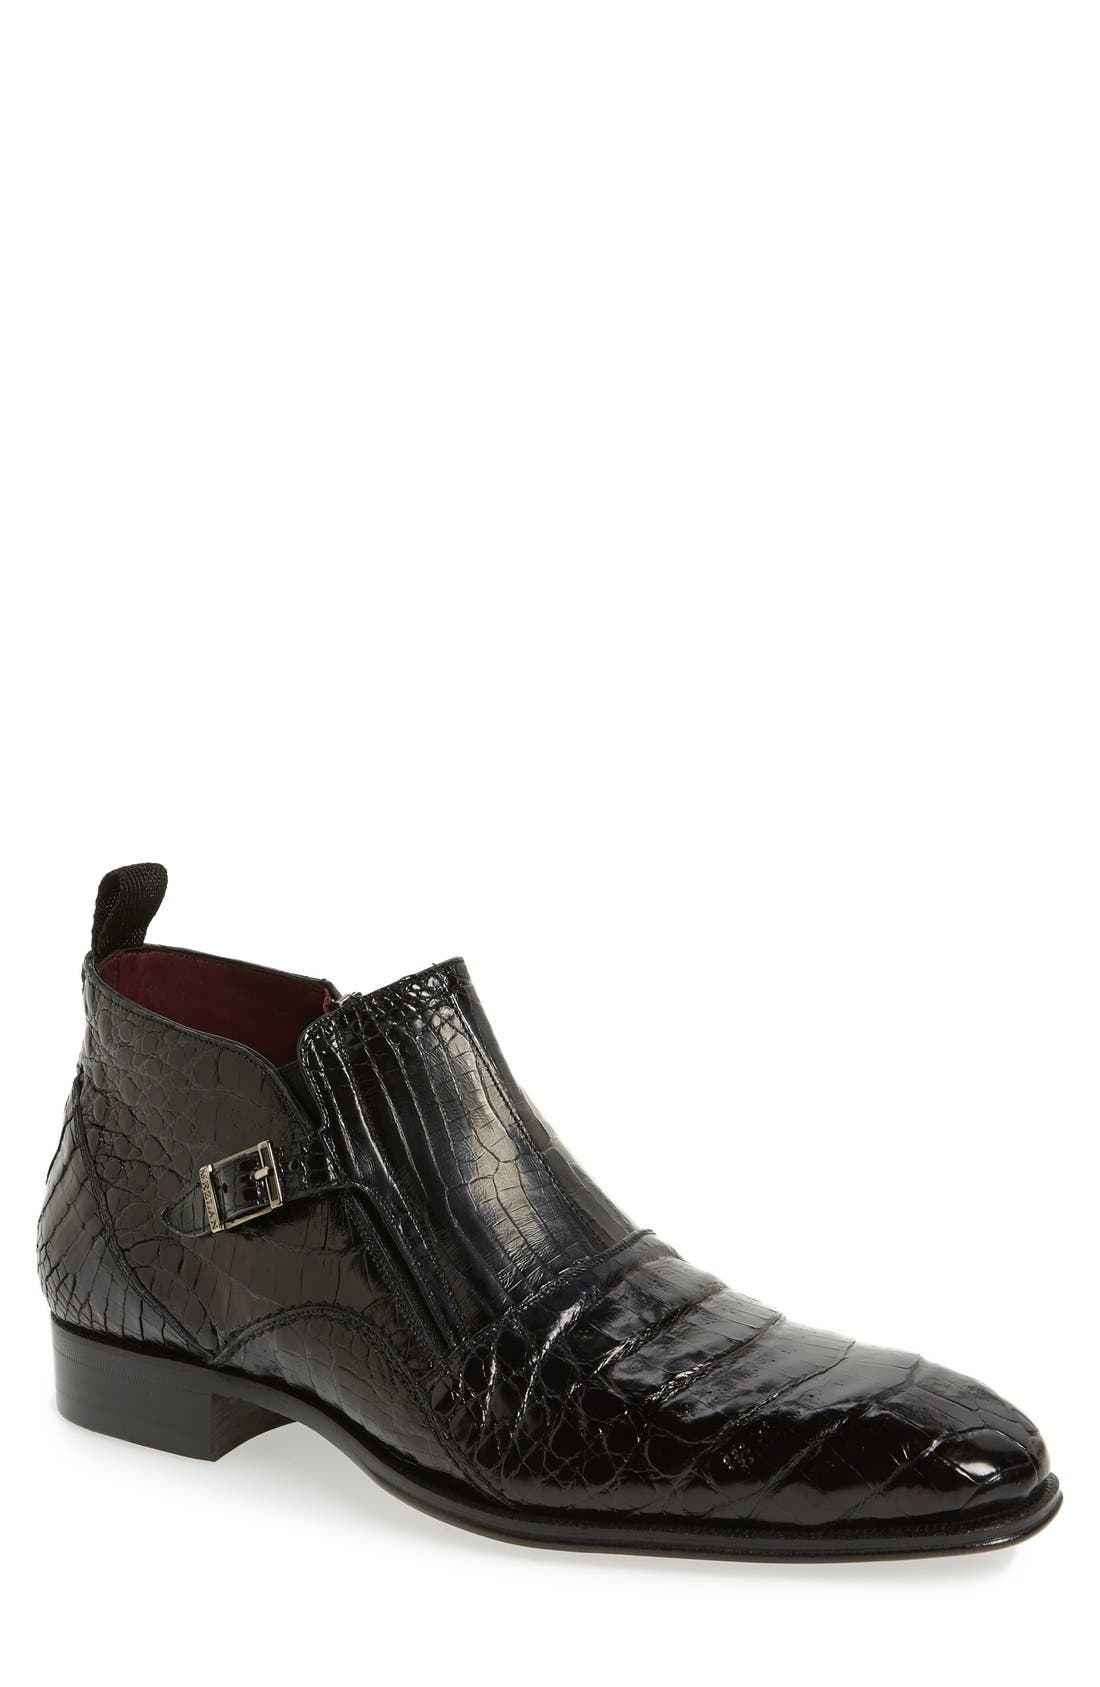 Main Image - Mezlan 'Bene' Chelsea Boot (Men)